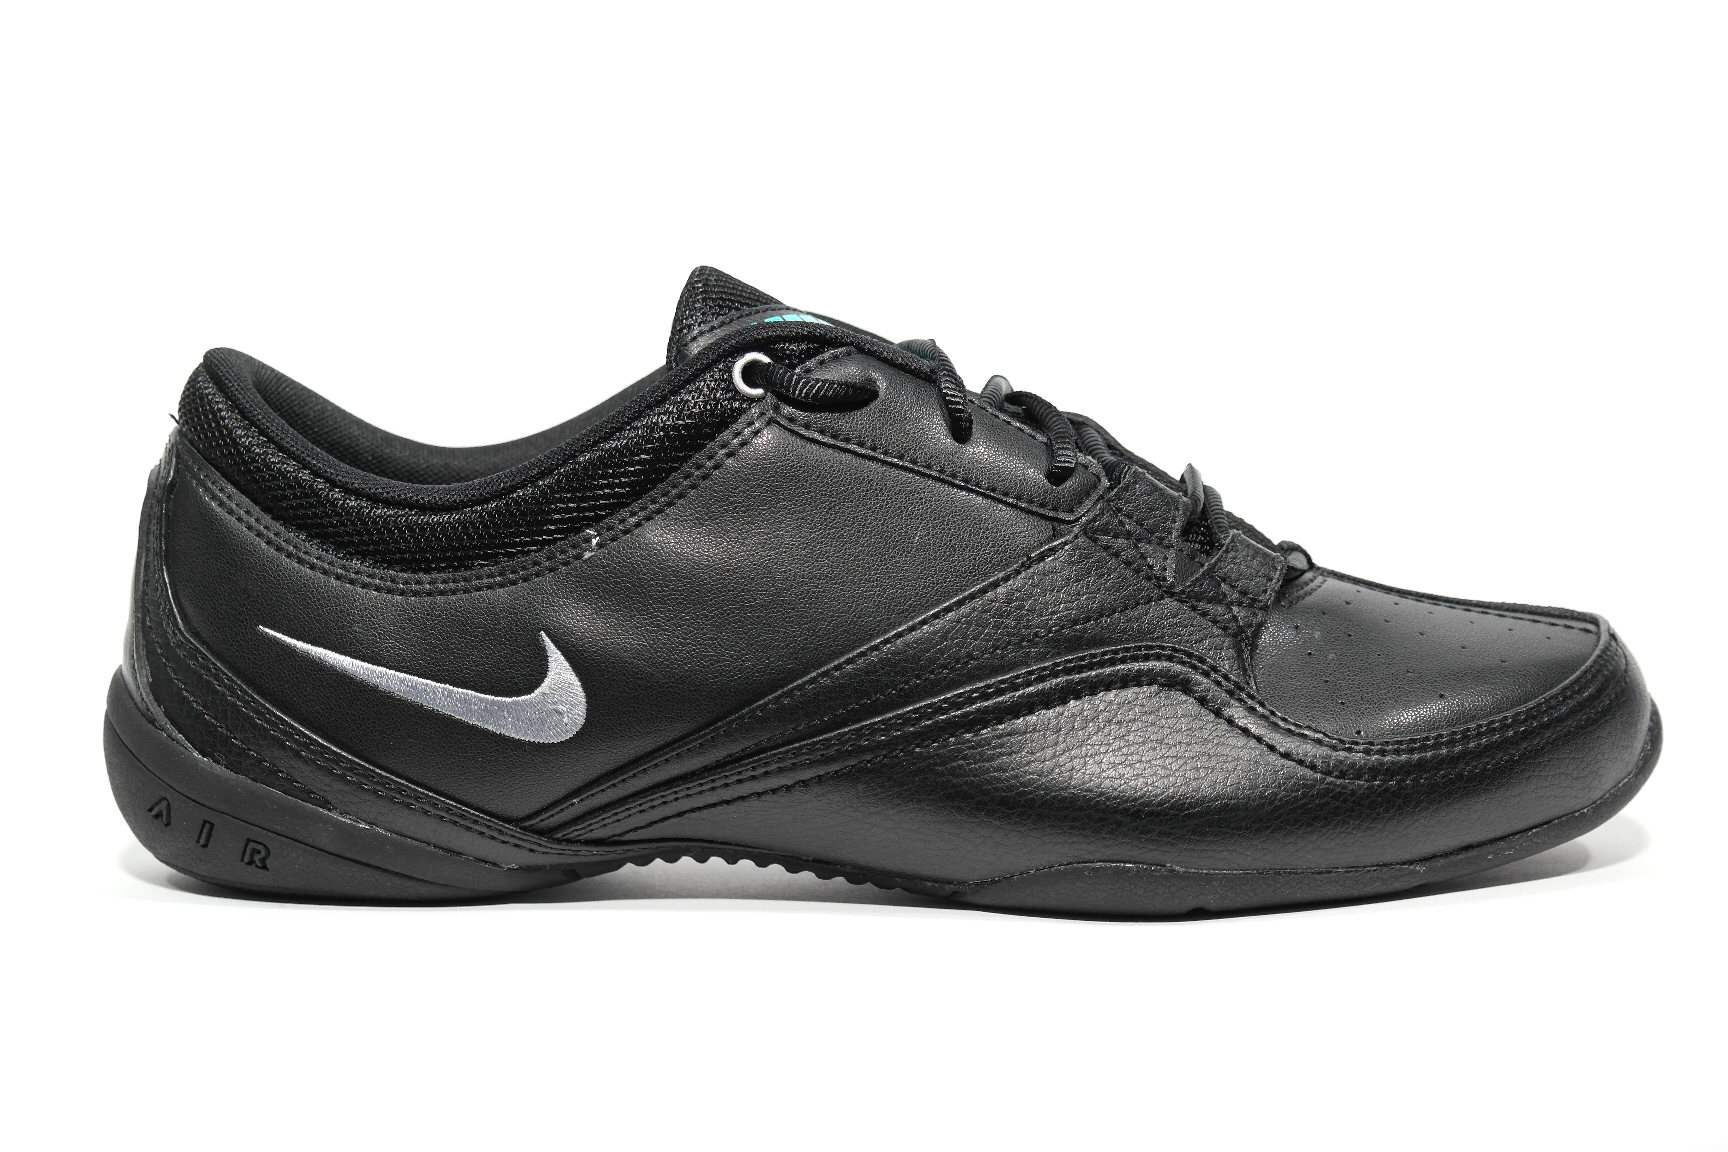 Dames fitness schoen Nike Air Devine